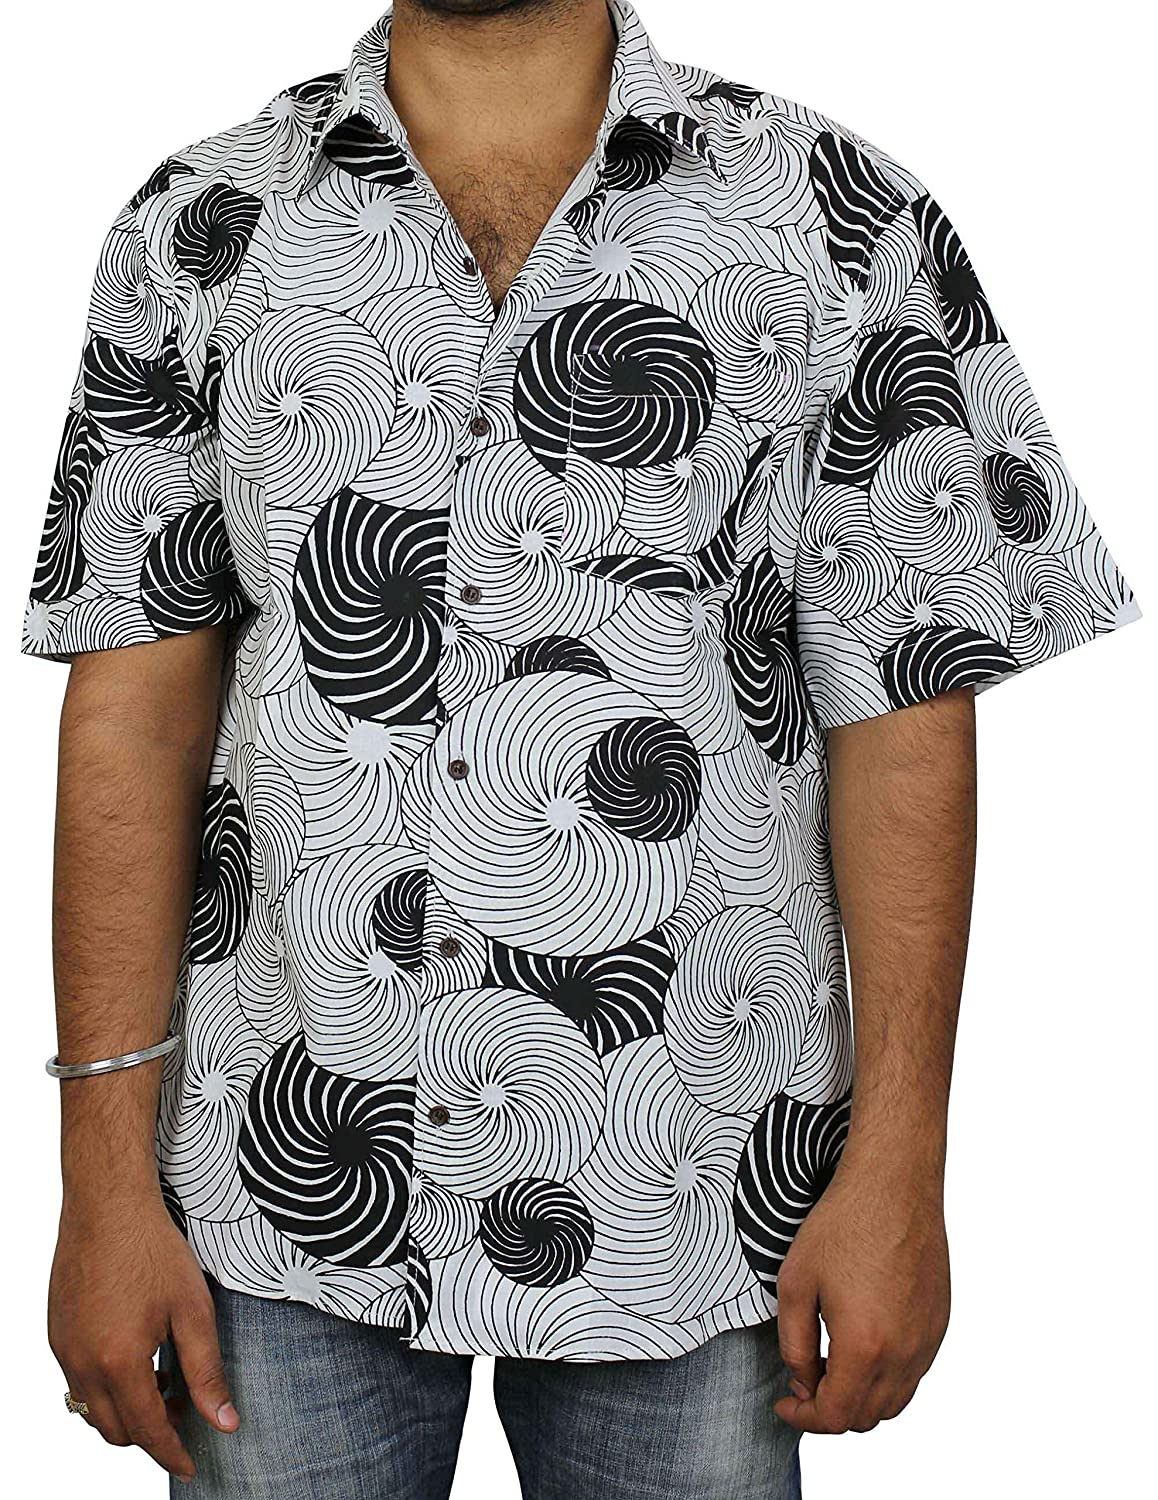 e01527de01 ShalinIndia Indian Beach Wear Cotton Printed Fashion Accessory for Men  Shirt Comfortable Airy: Amazon.in: Clothing & Accessories